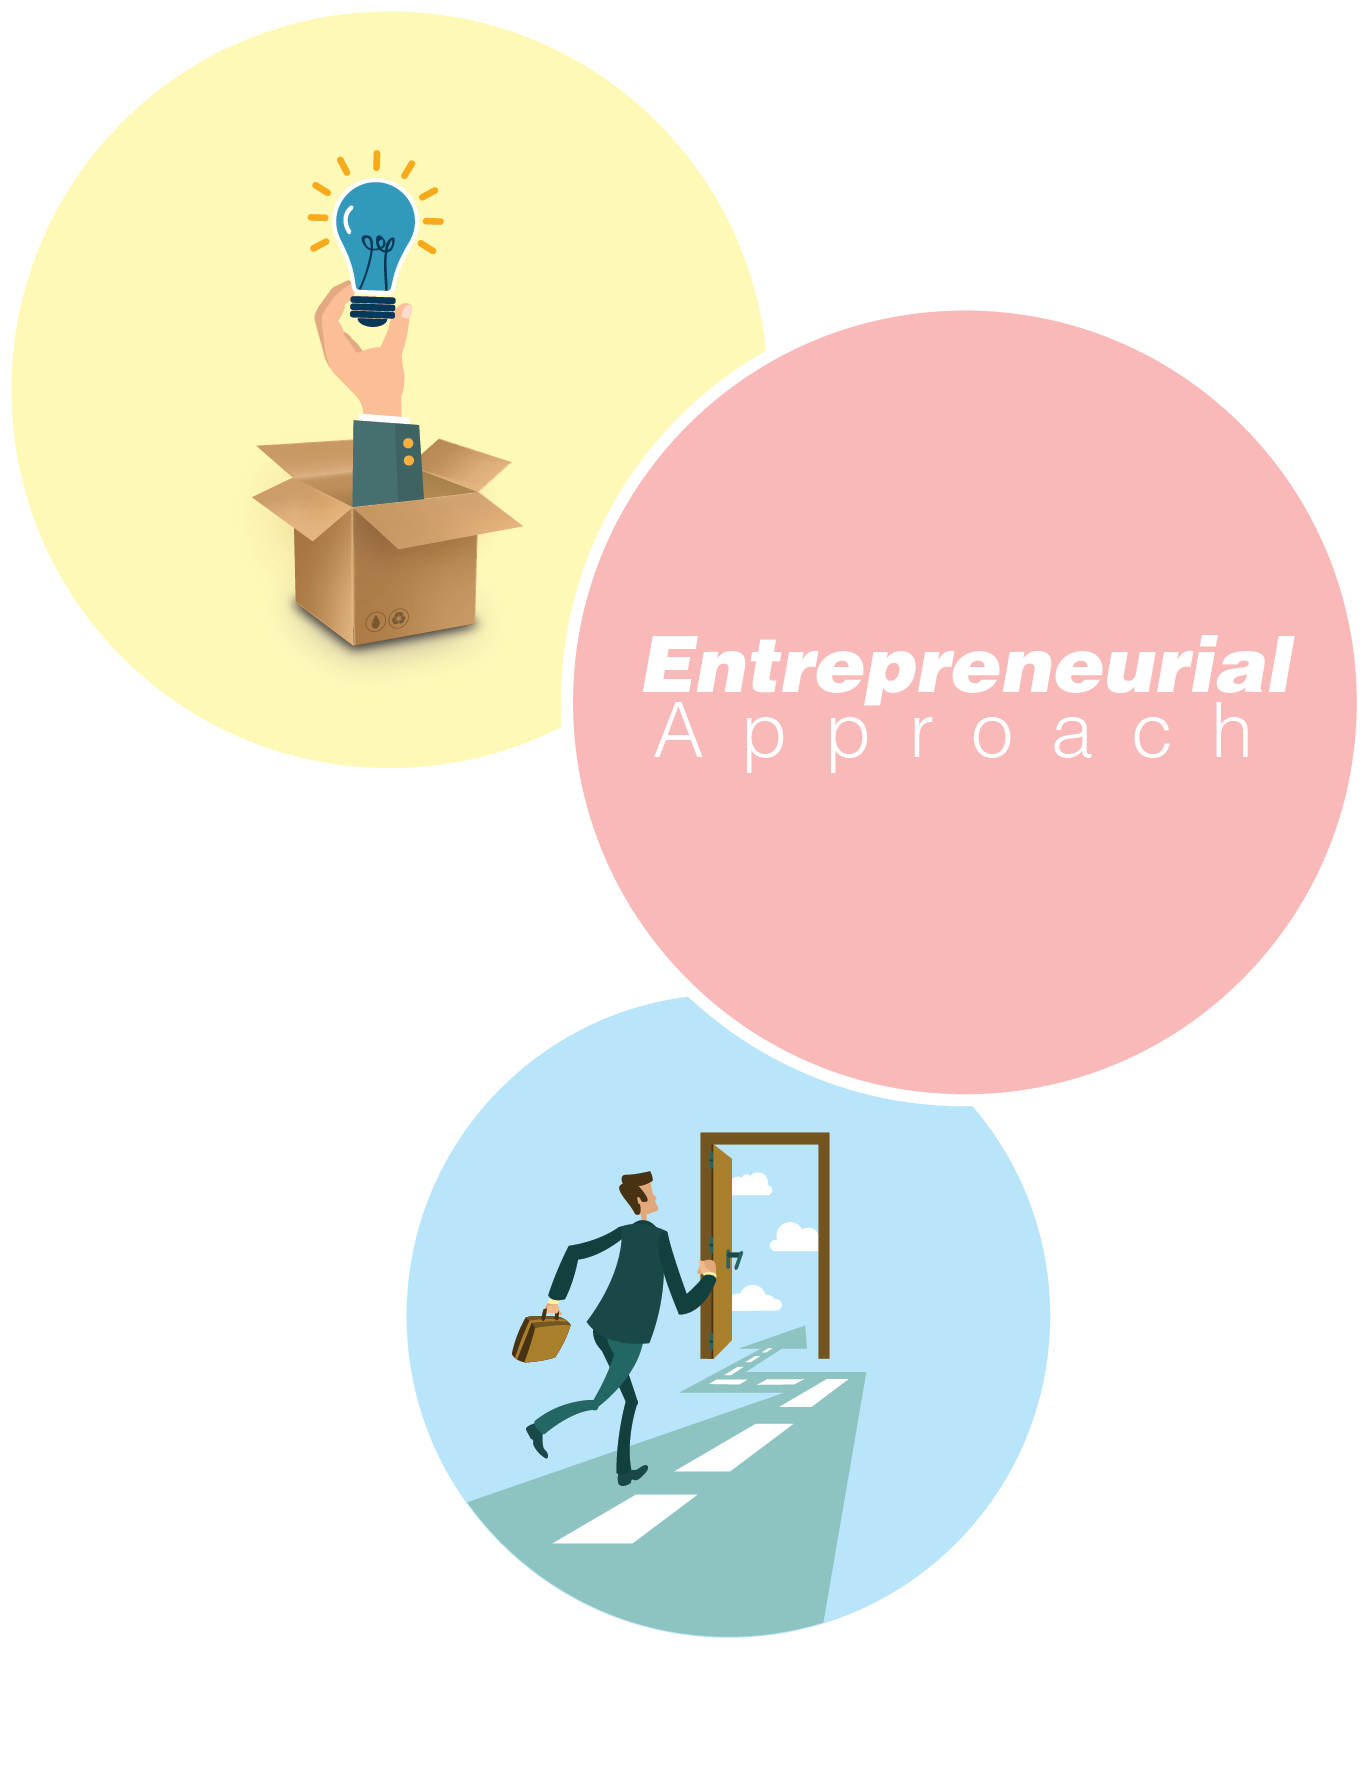 Entrepreneurial approach